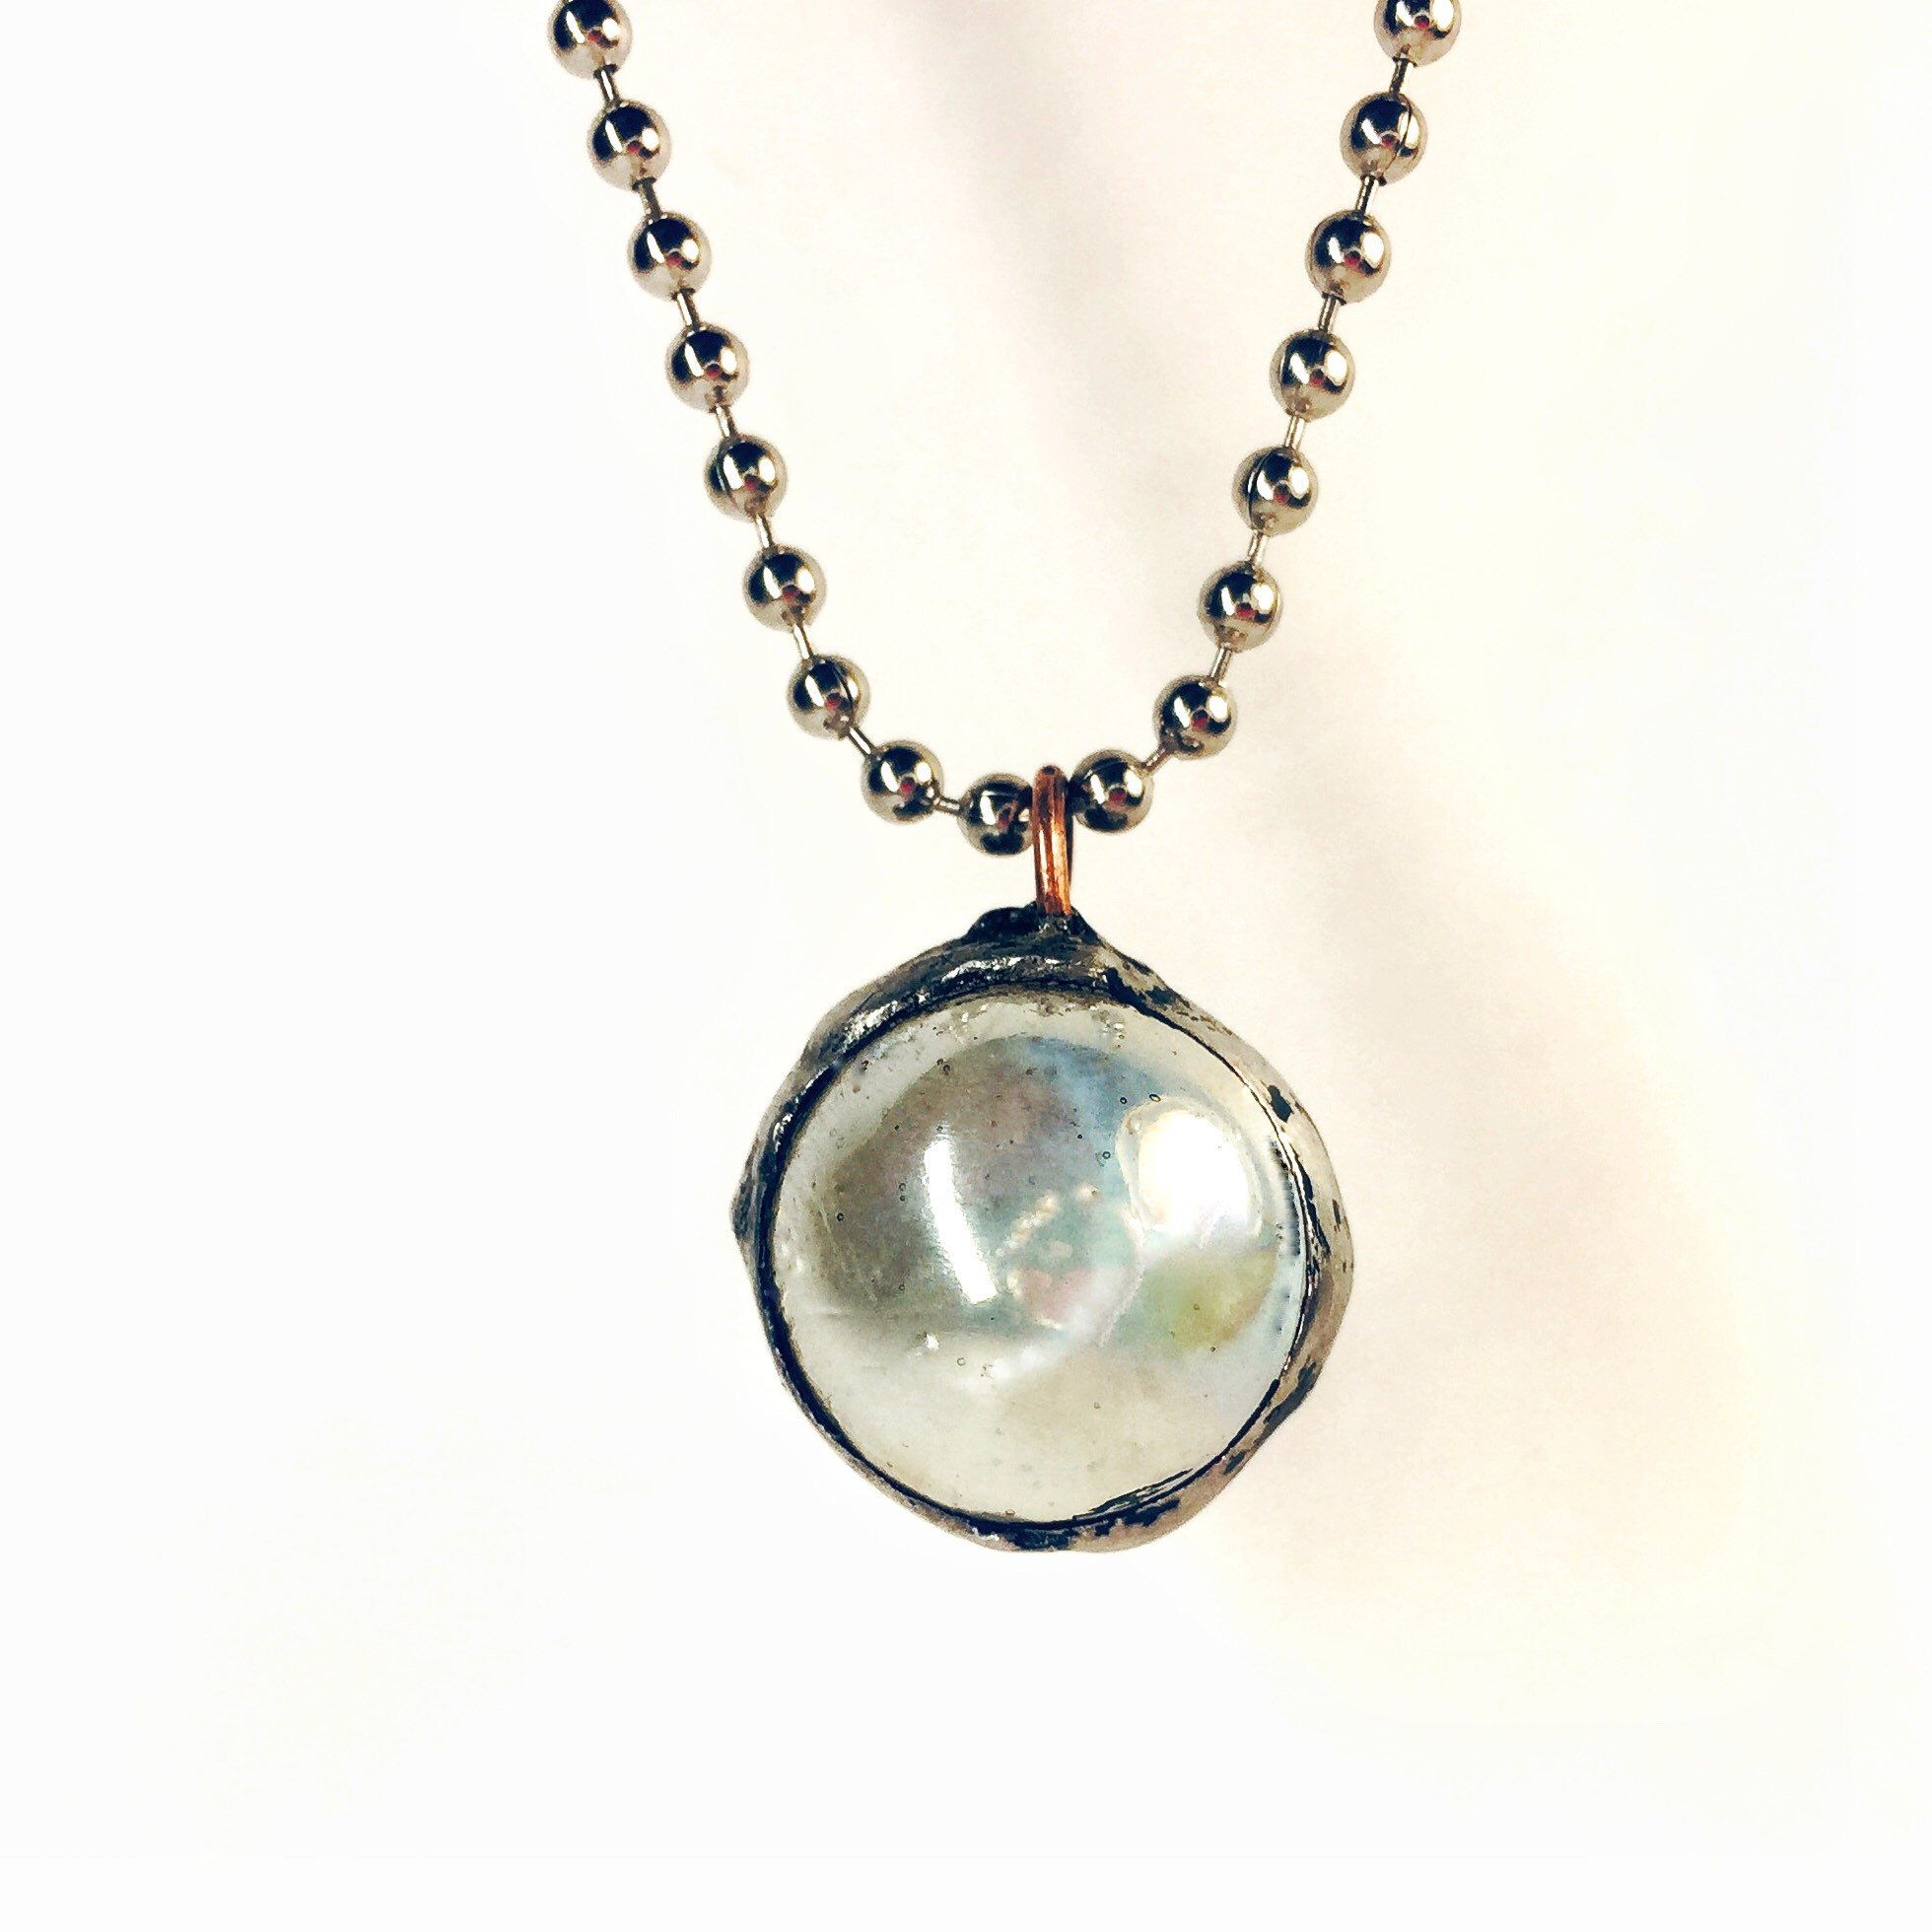 Glass Ball Necklace Stained Glass Ab Clear Marble Charm Etsy Vintage Style Necklace Ball Necklace Large Hoop Earrings